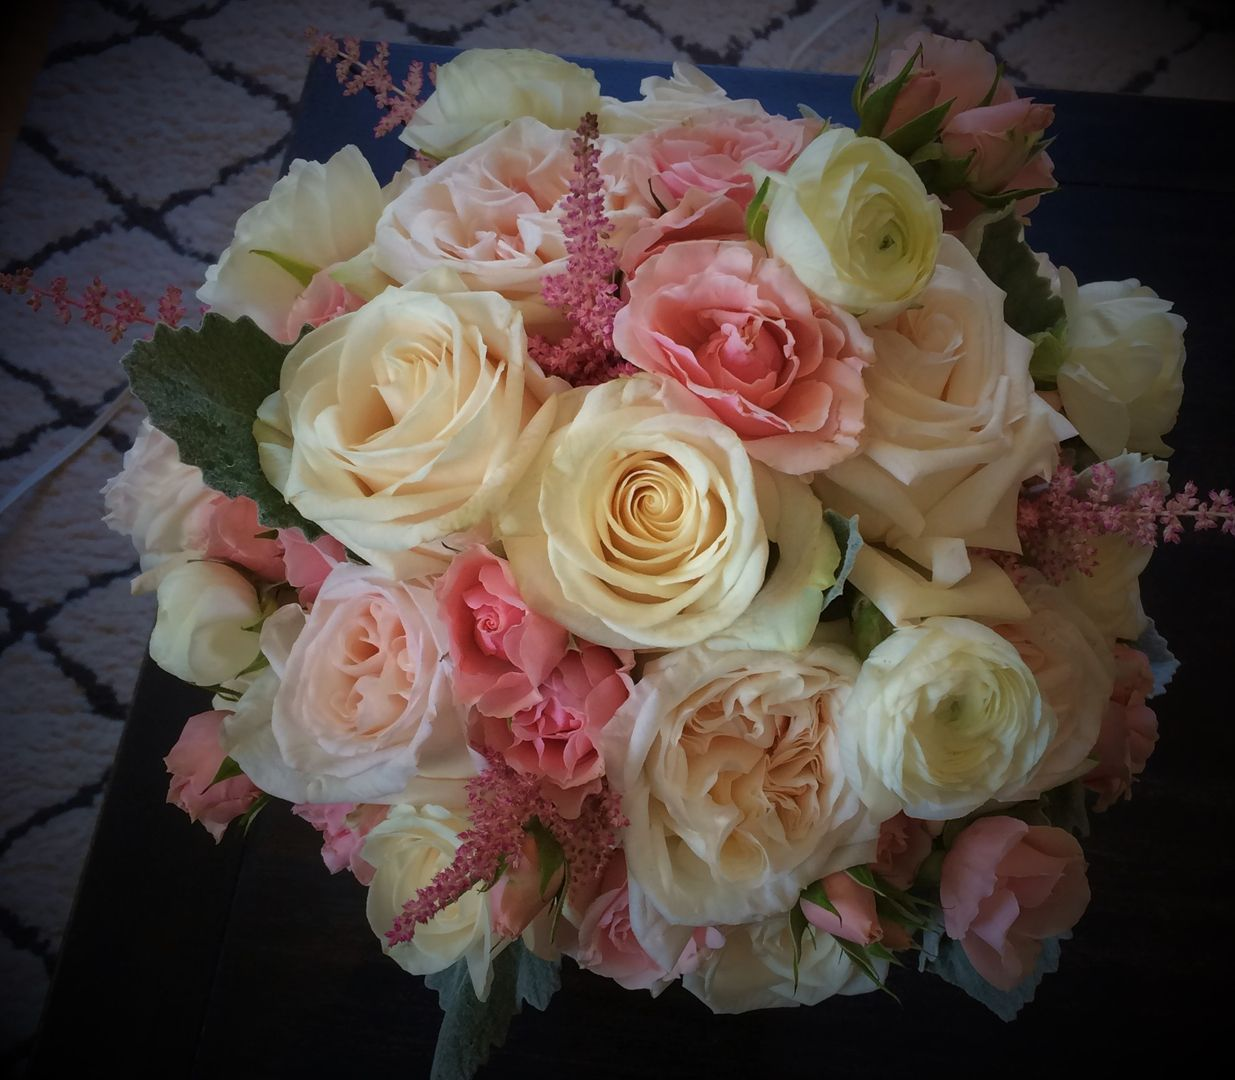 Blush Garden Roses White Roses Pink Spray Rose Pink Astible and